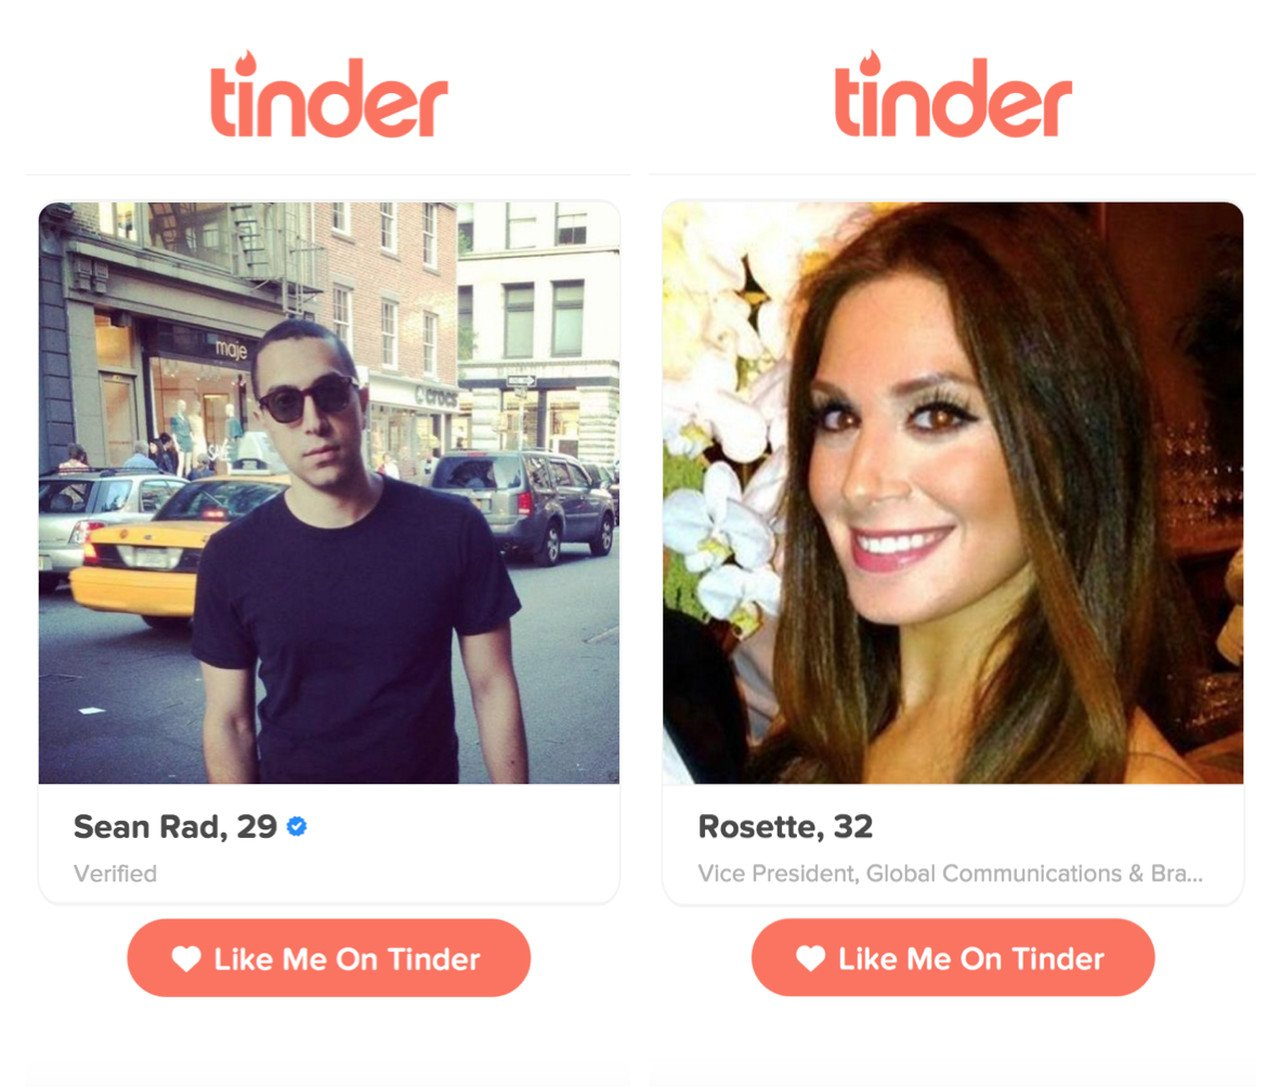 Tinder is successful growth hacking example.